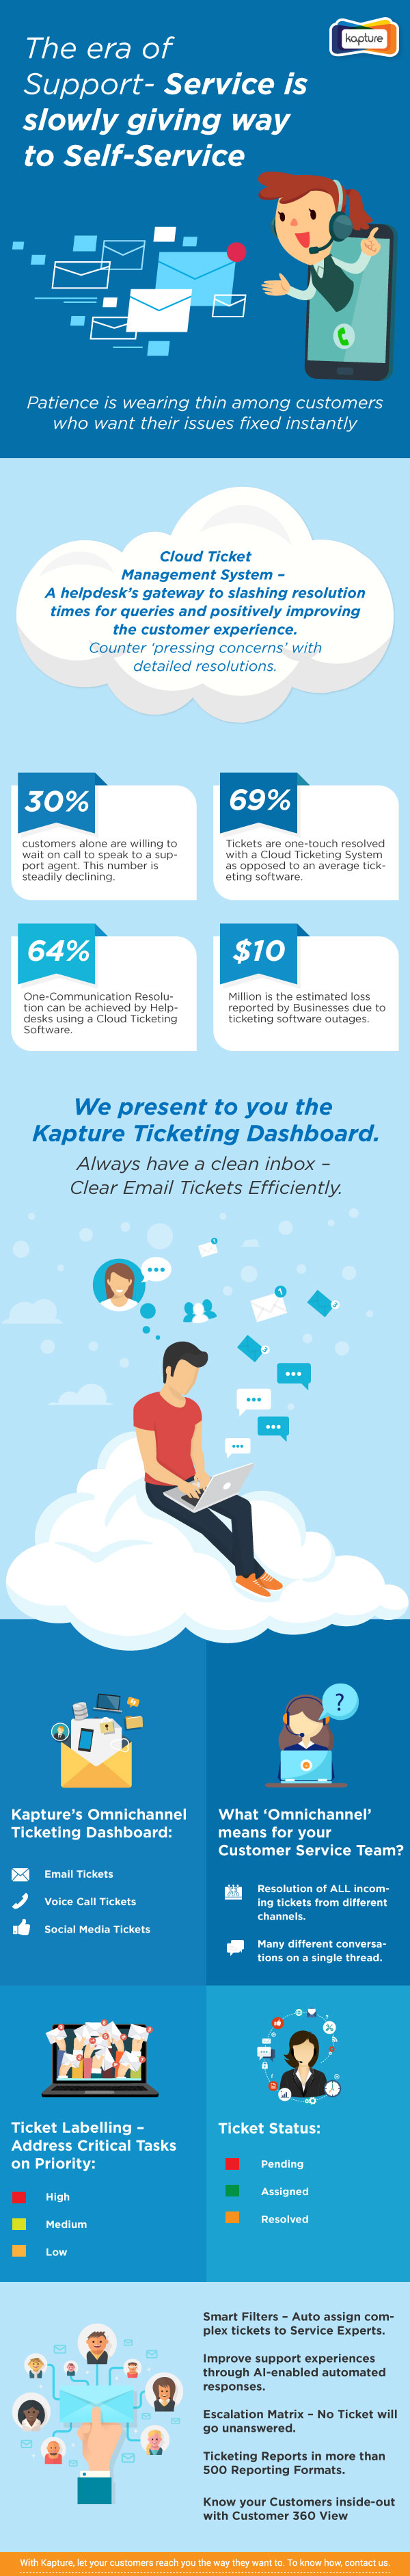 Kapture CRM's Omnichannel Ticketing Dashboard guarantees a forever-clean inbox. Enterprise Helpdesks will be able to resolve call, email, and chat tickets faster with features like Ticket Labelling and Smart Filters.